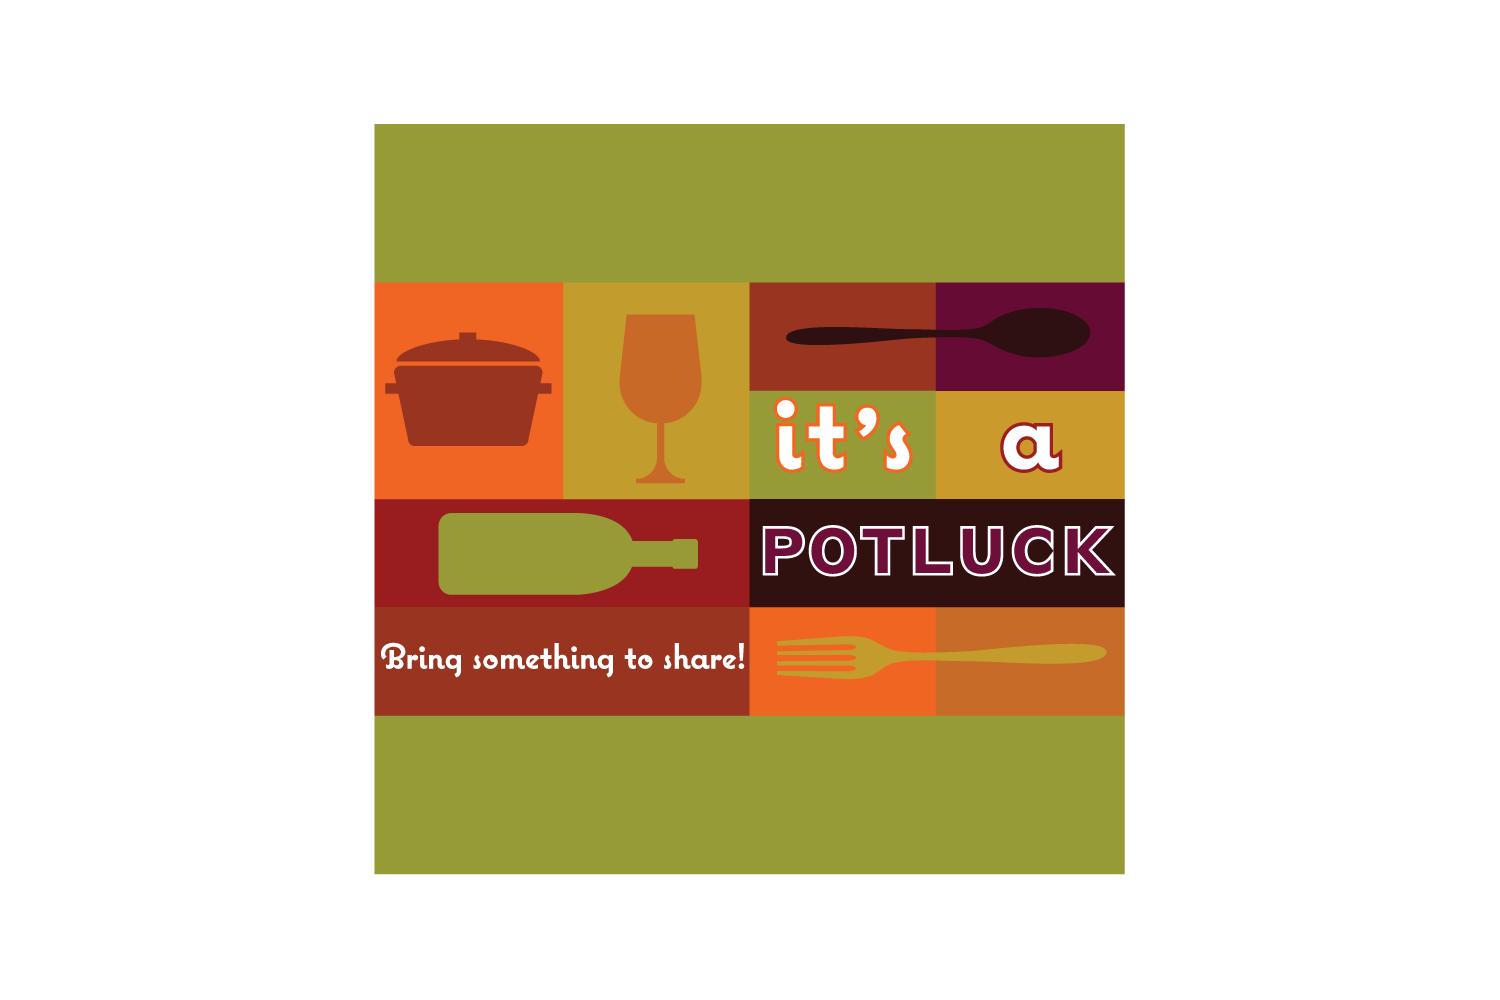 evite-potluck.png